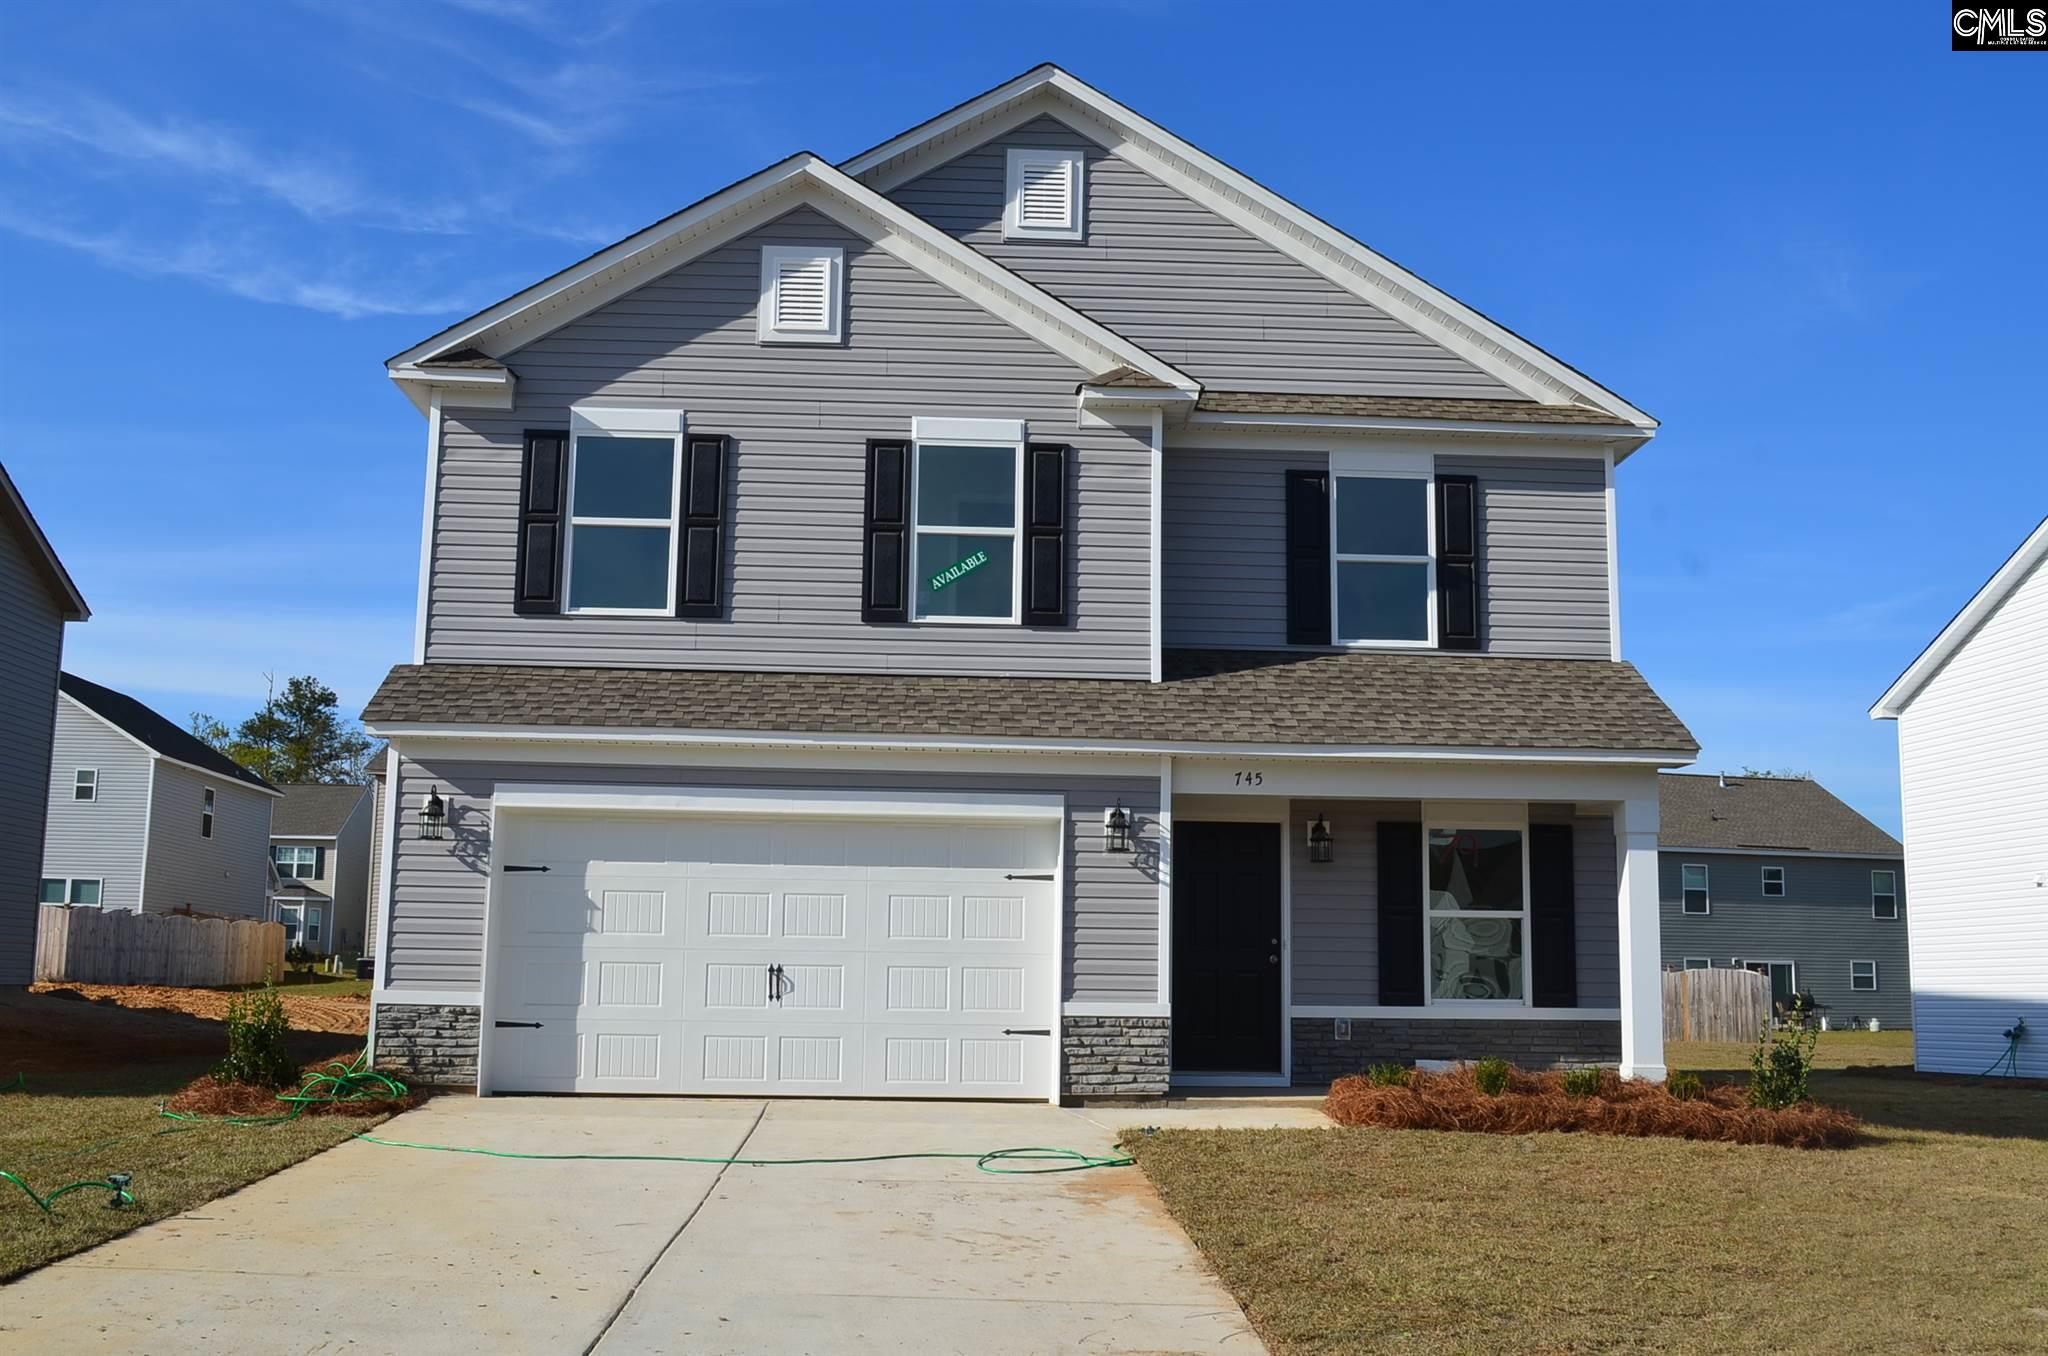 745 Lansford Bay West Columbia, SC 29172